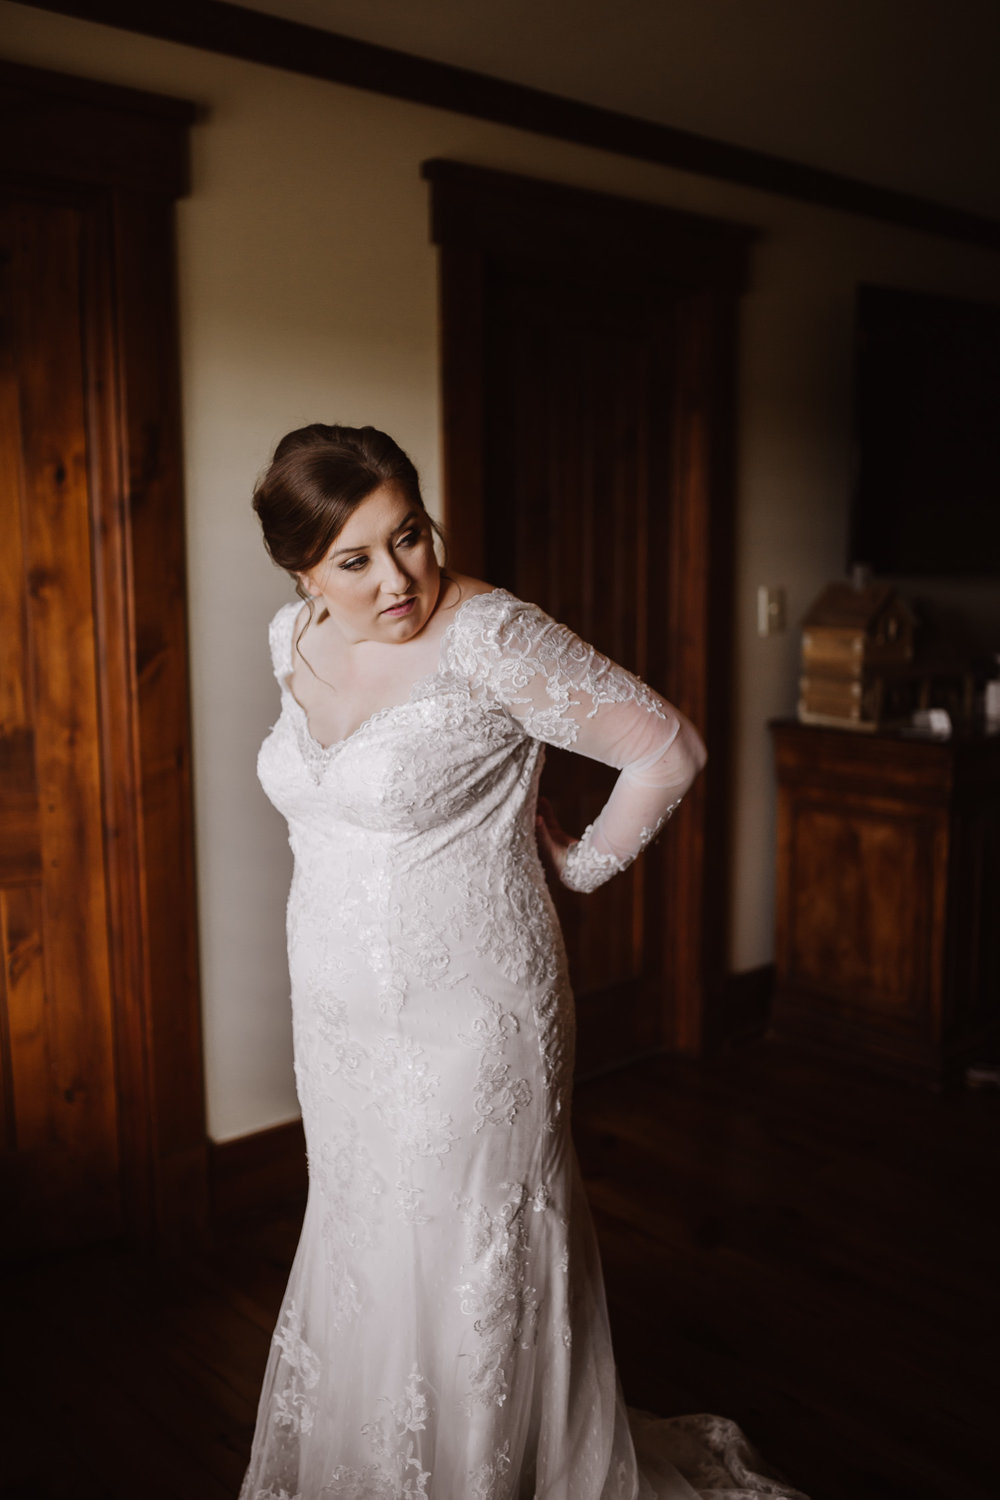 Classy, Southern, Country Wedding   wedding details and getting ready at Atkinson Farms in Danville, Virginia   Greensboro Winston-Salem, NC Wedding Photographer